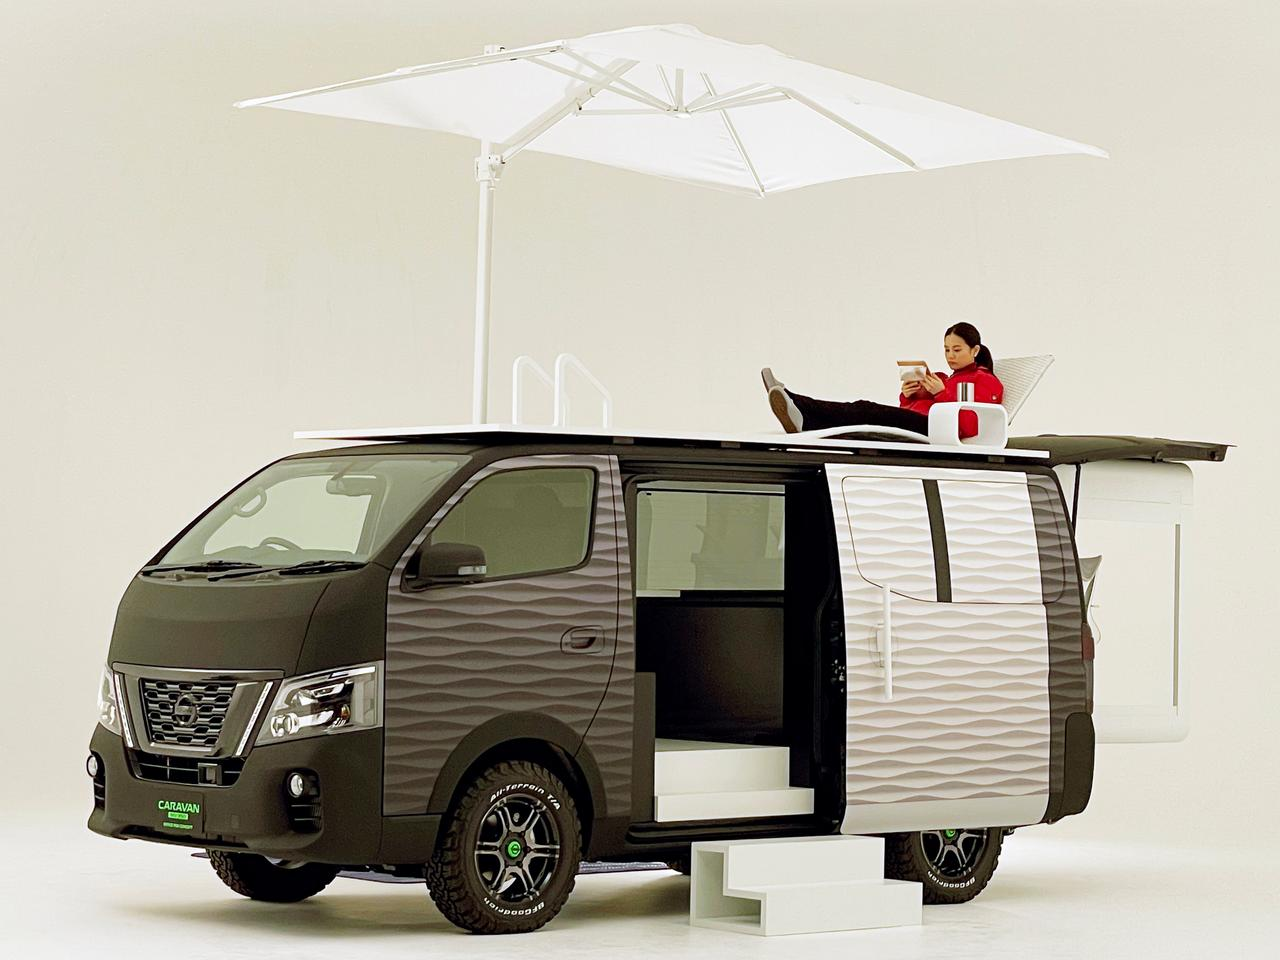 Whether working hard or hardly working, the Nissan NV350 provides a comfortable private office space in the wild